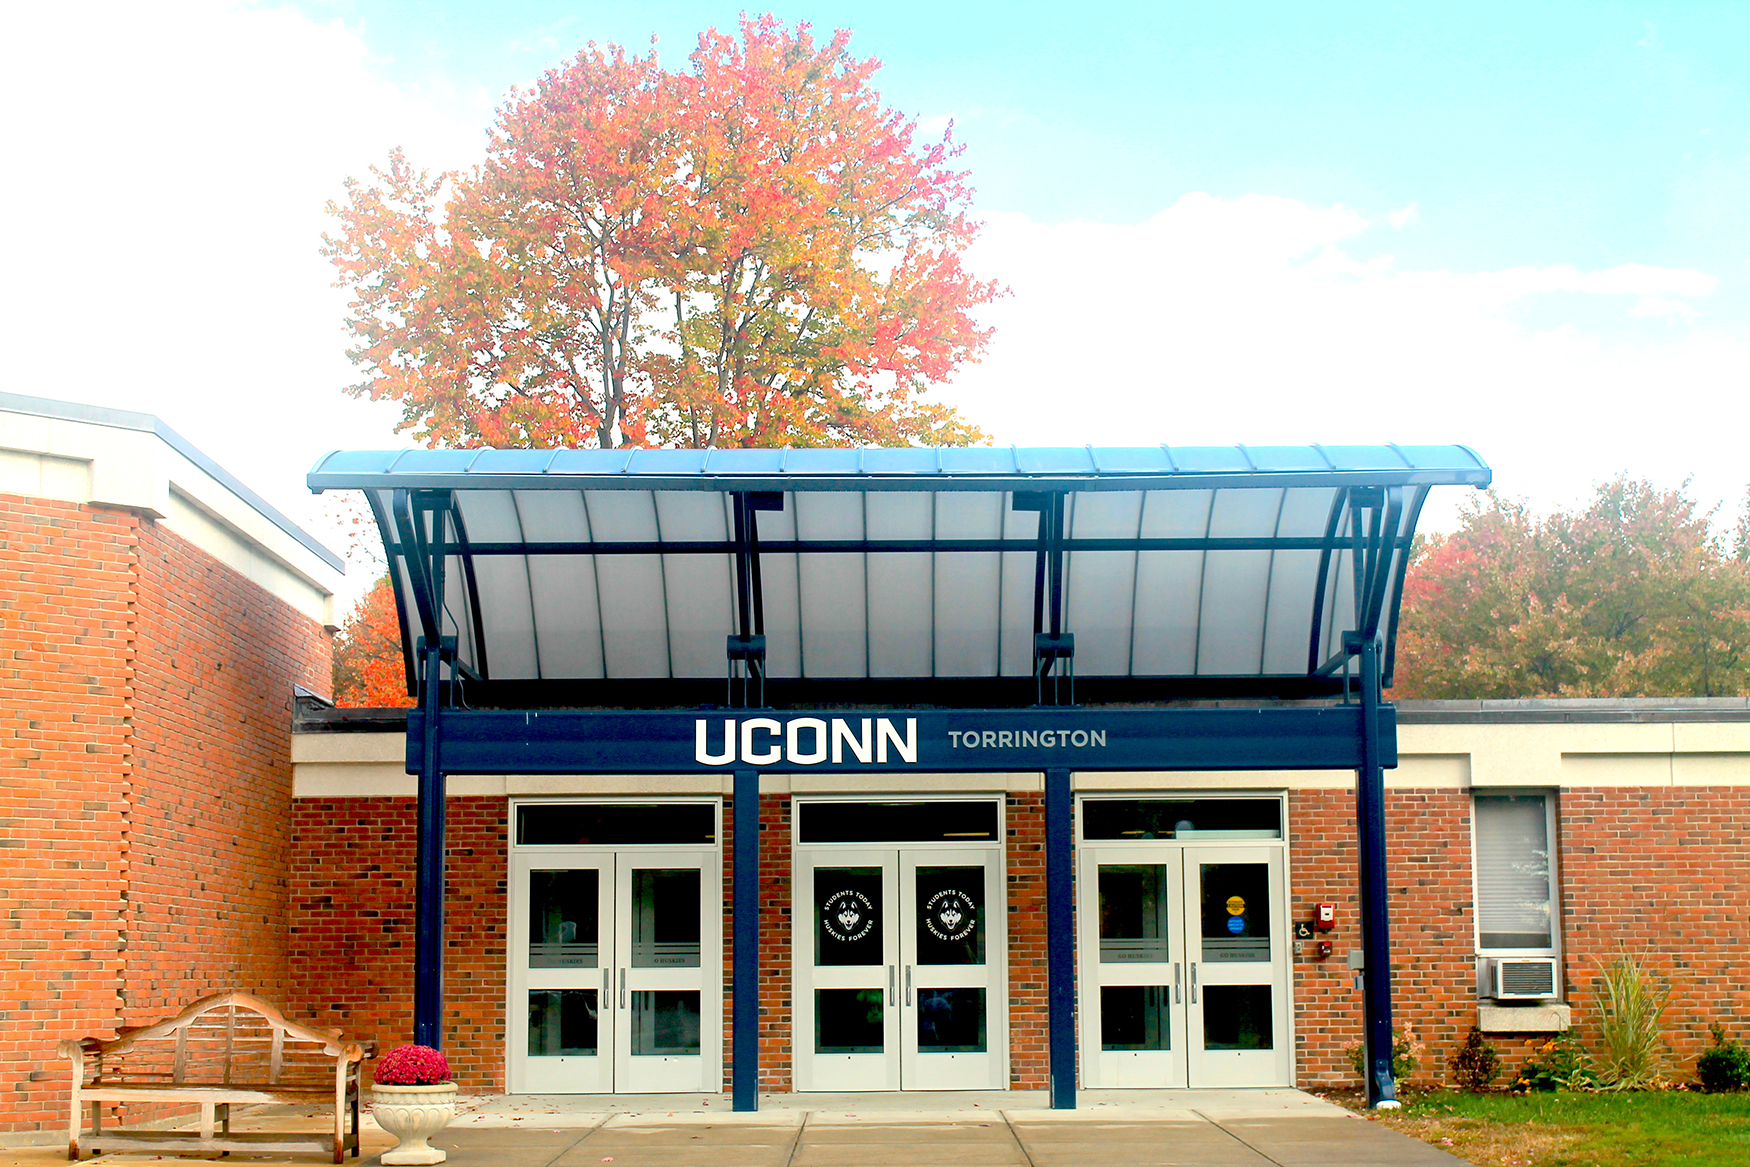 The Academic Affairs Committee of UConn's Board of Trustees will meet with University of Connecticut officials to discuss closing the Torrington campus. (Photo courtesy of Torrington.UConn.edu)